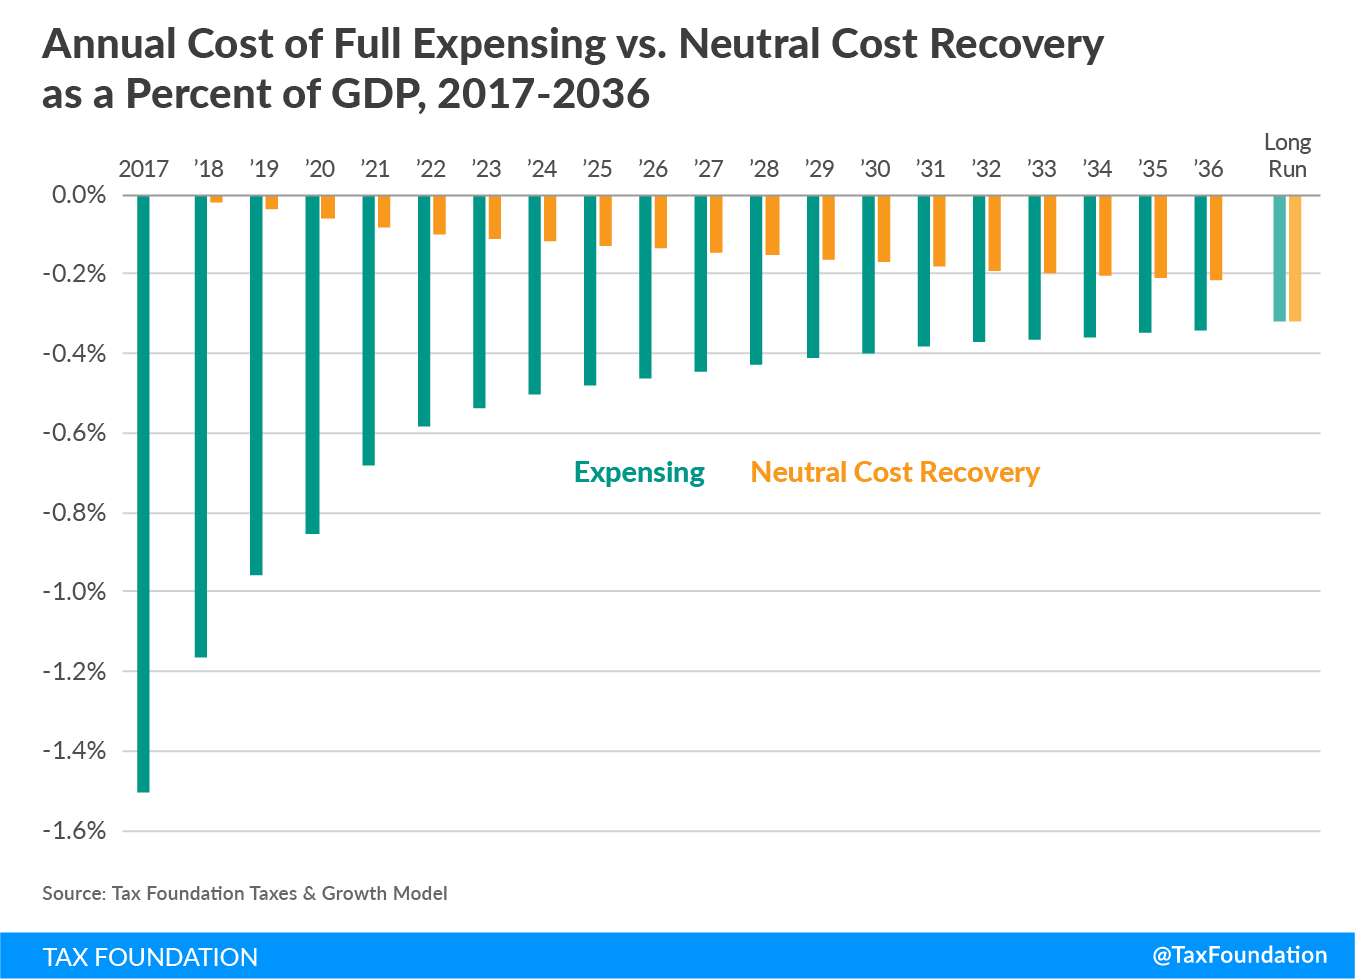 Annual Cost of Full Expensing vs. Neutral Cost Recovery as a Percent of GDP, 2017-2036